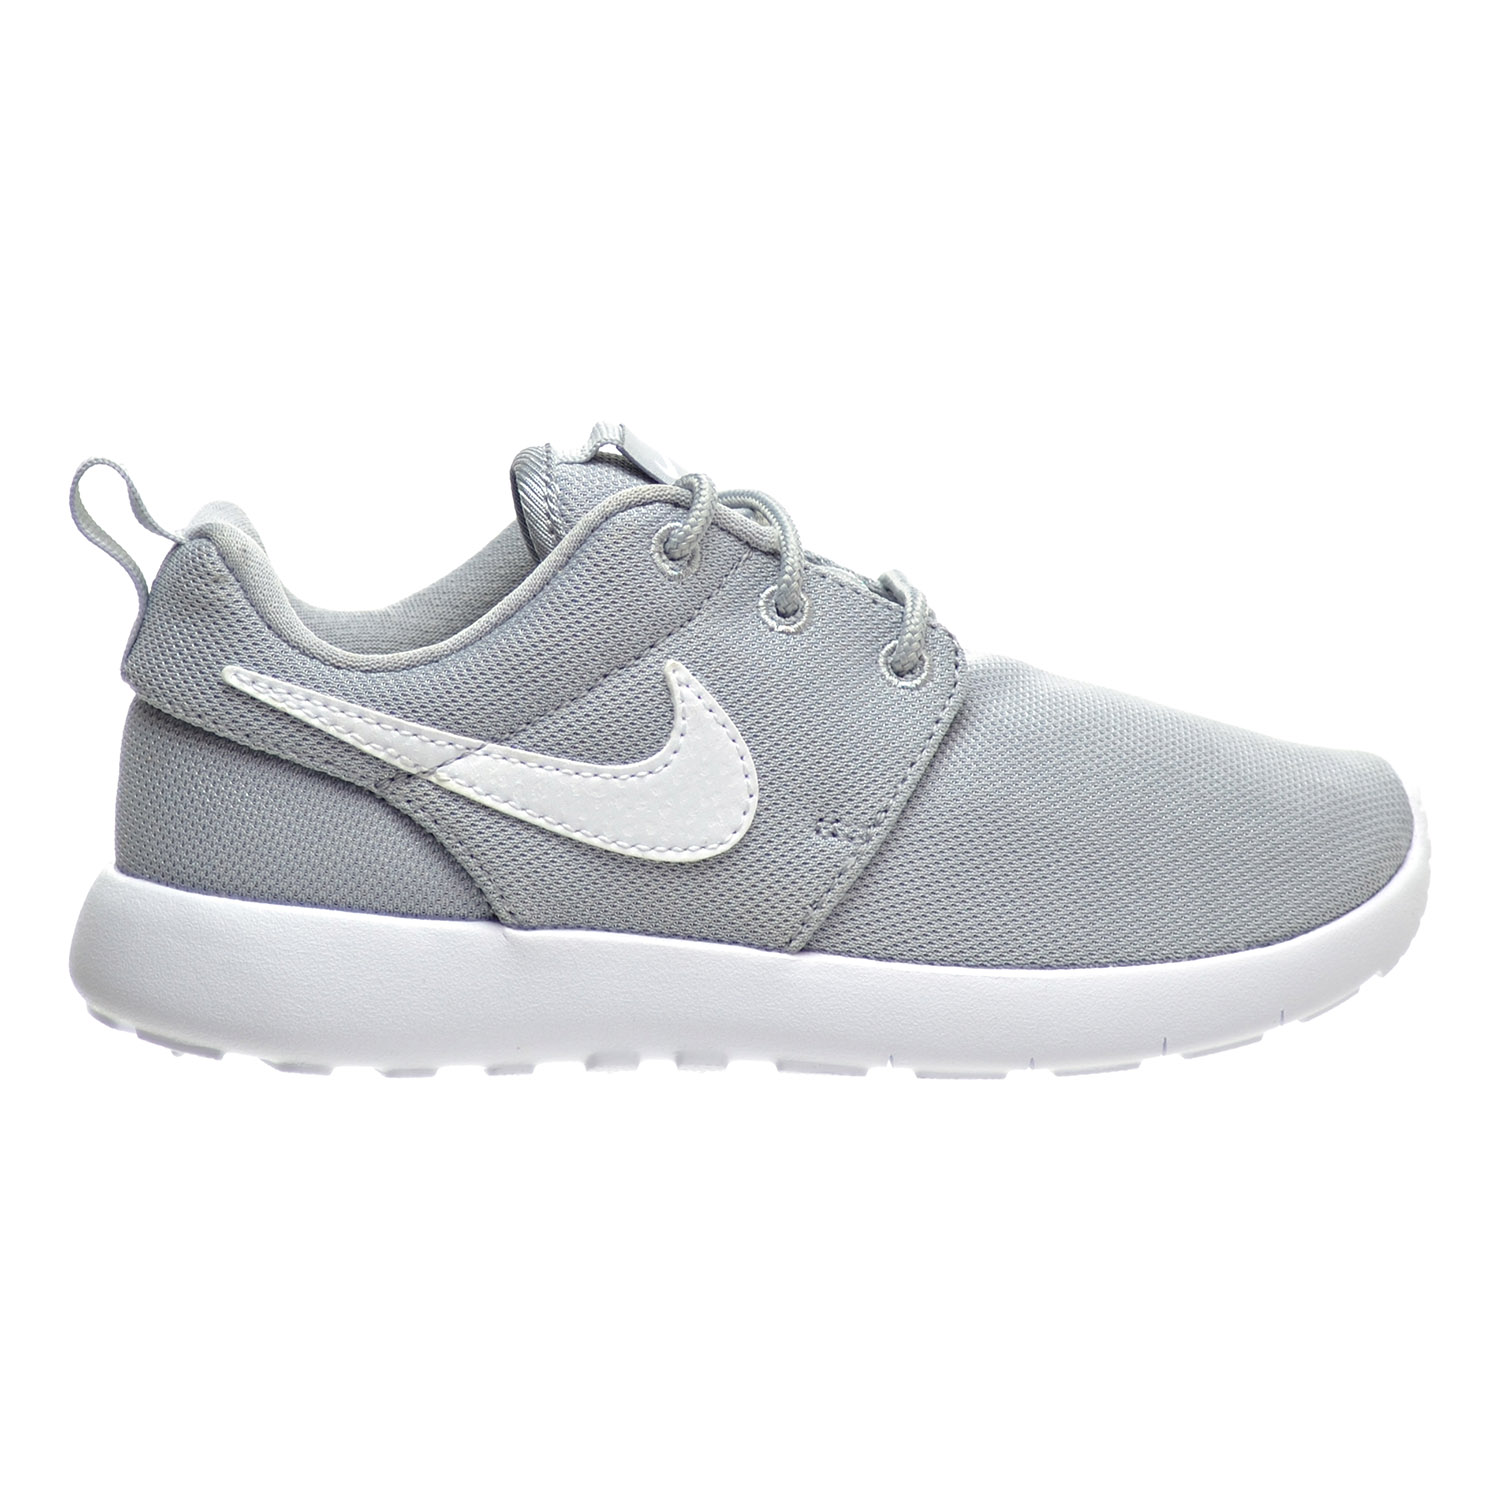 7c8a2766e29 Nike Roshe One (PS) Little Kid's Shoes Wolf Grey/White 749427-033